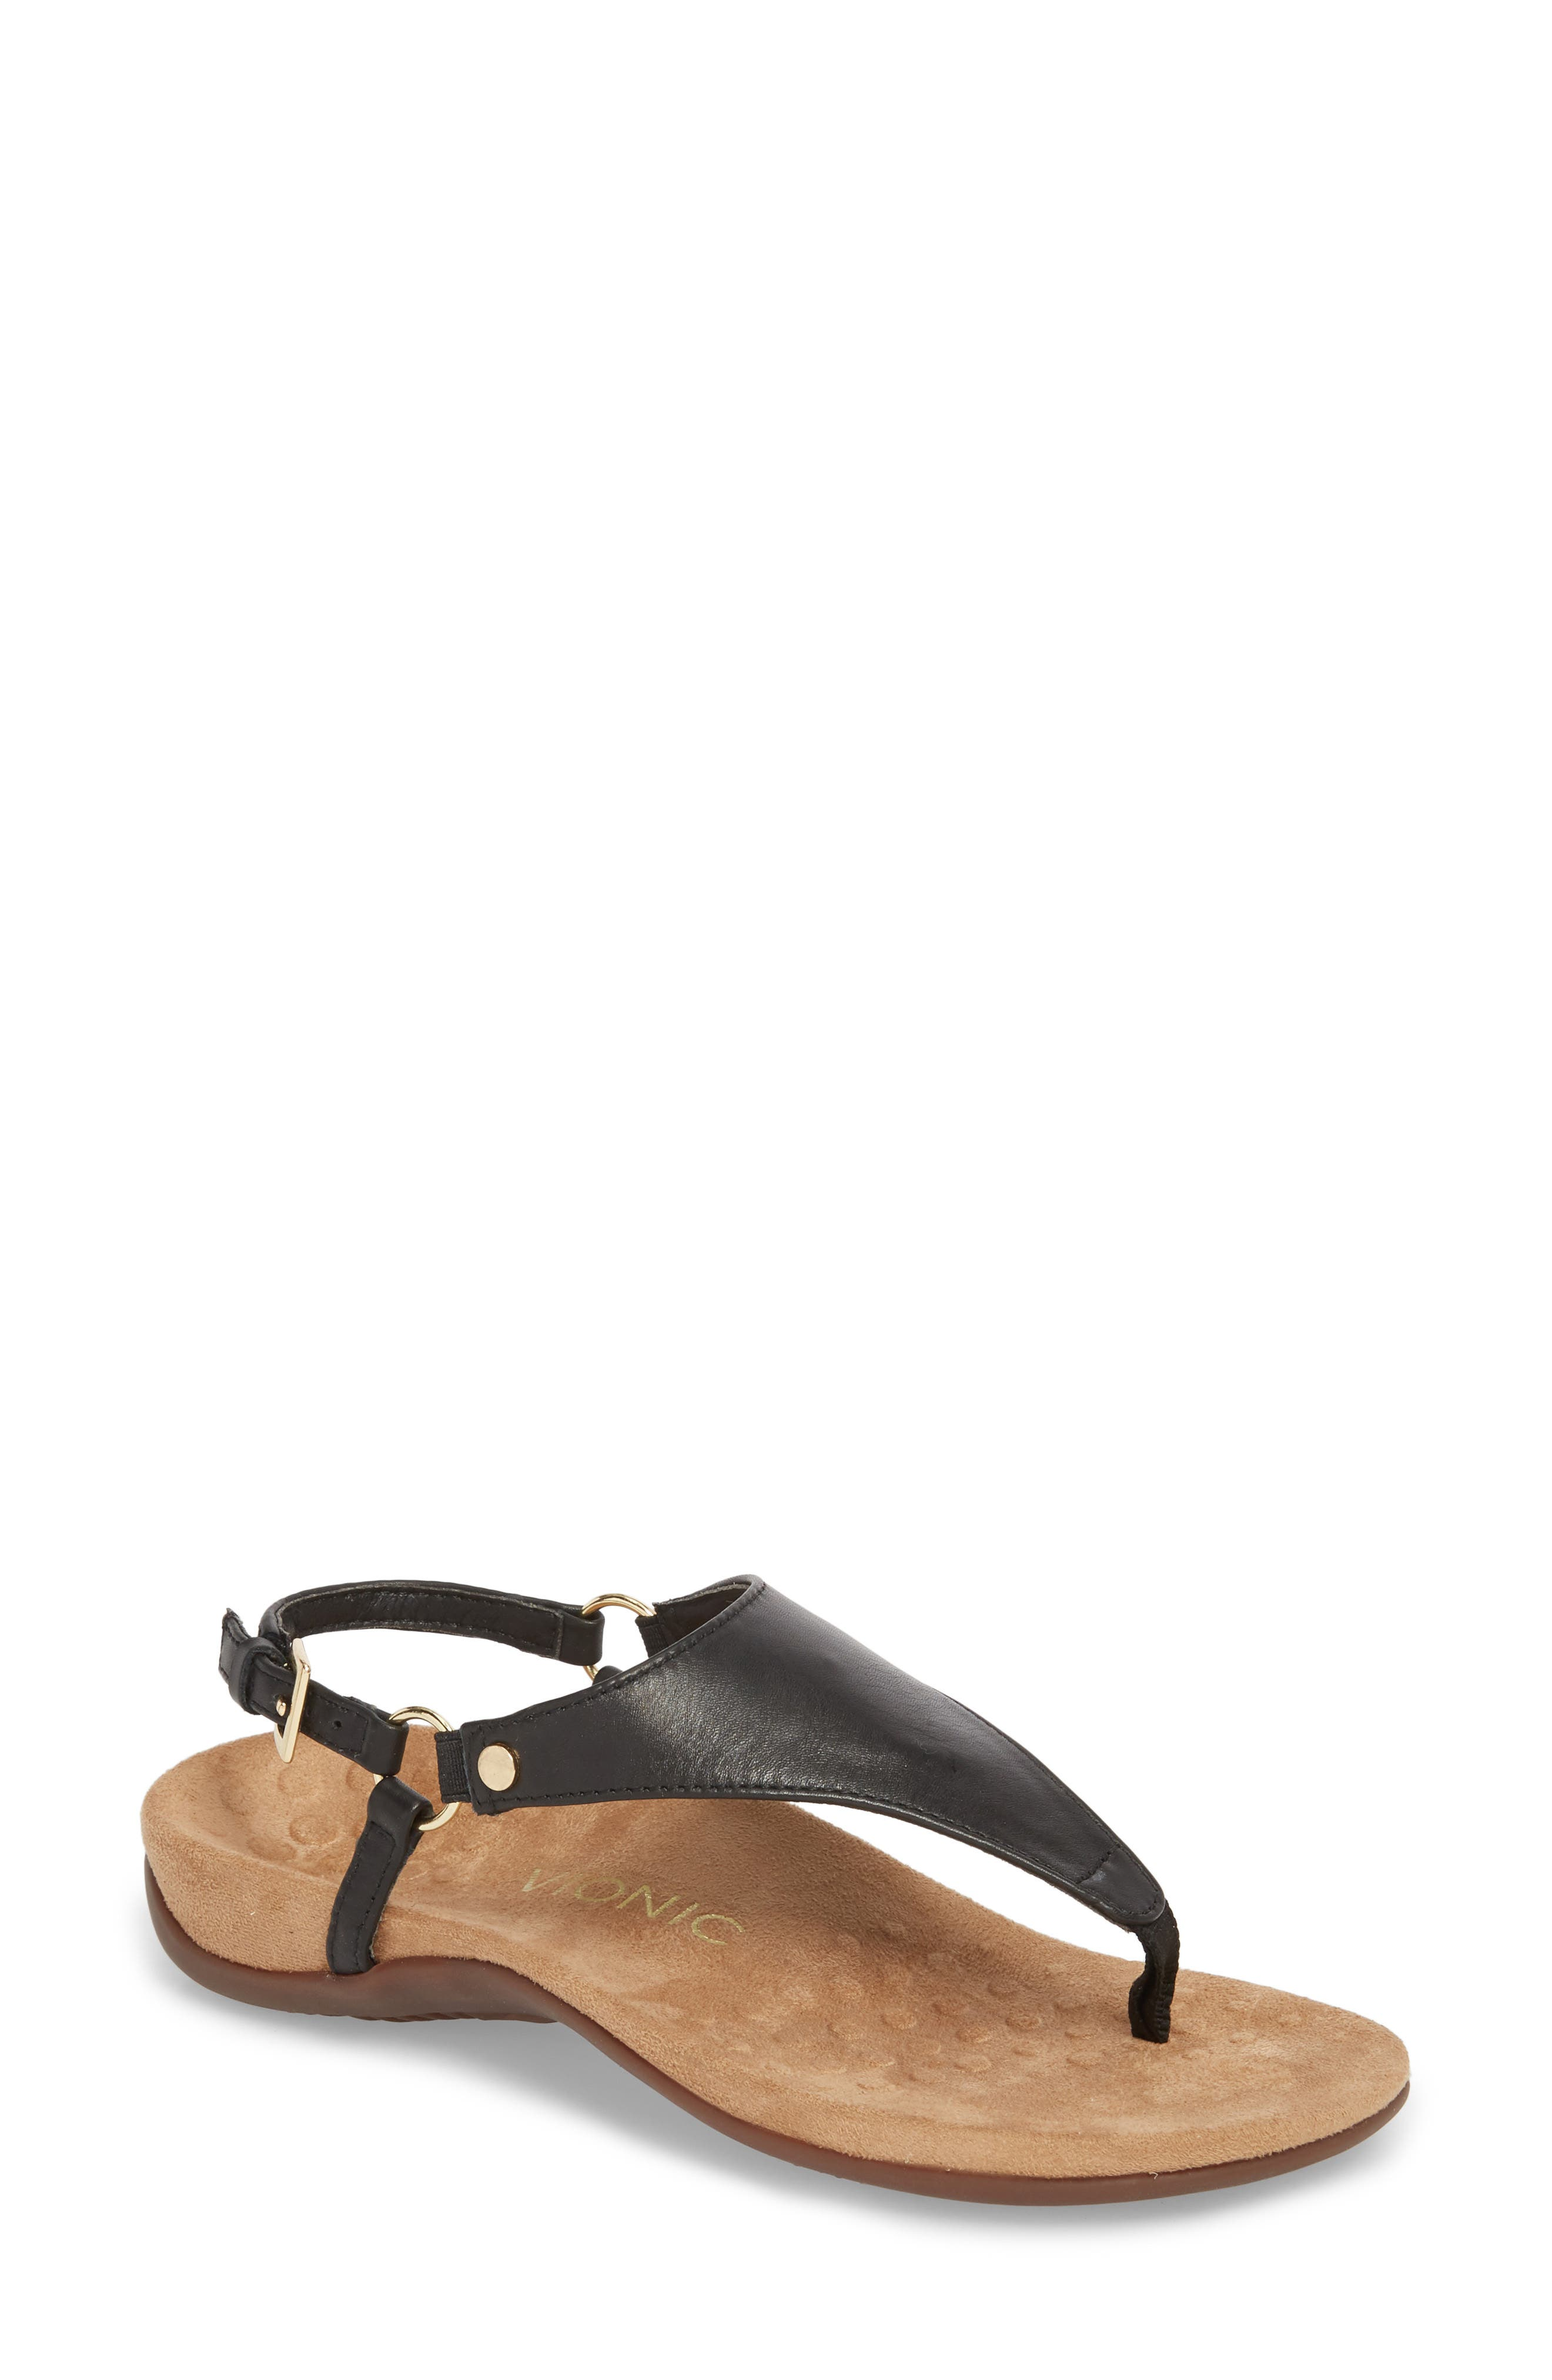 Kirra Orthaheel<sup>®</sup> Sandal,                             Main thumbnail 1, color,                             BLACK LEATHER